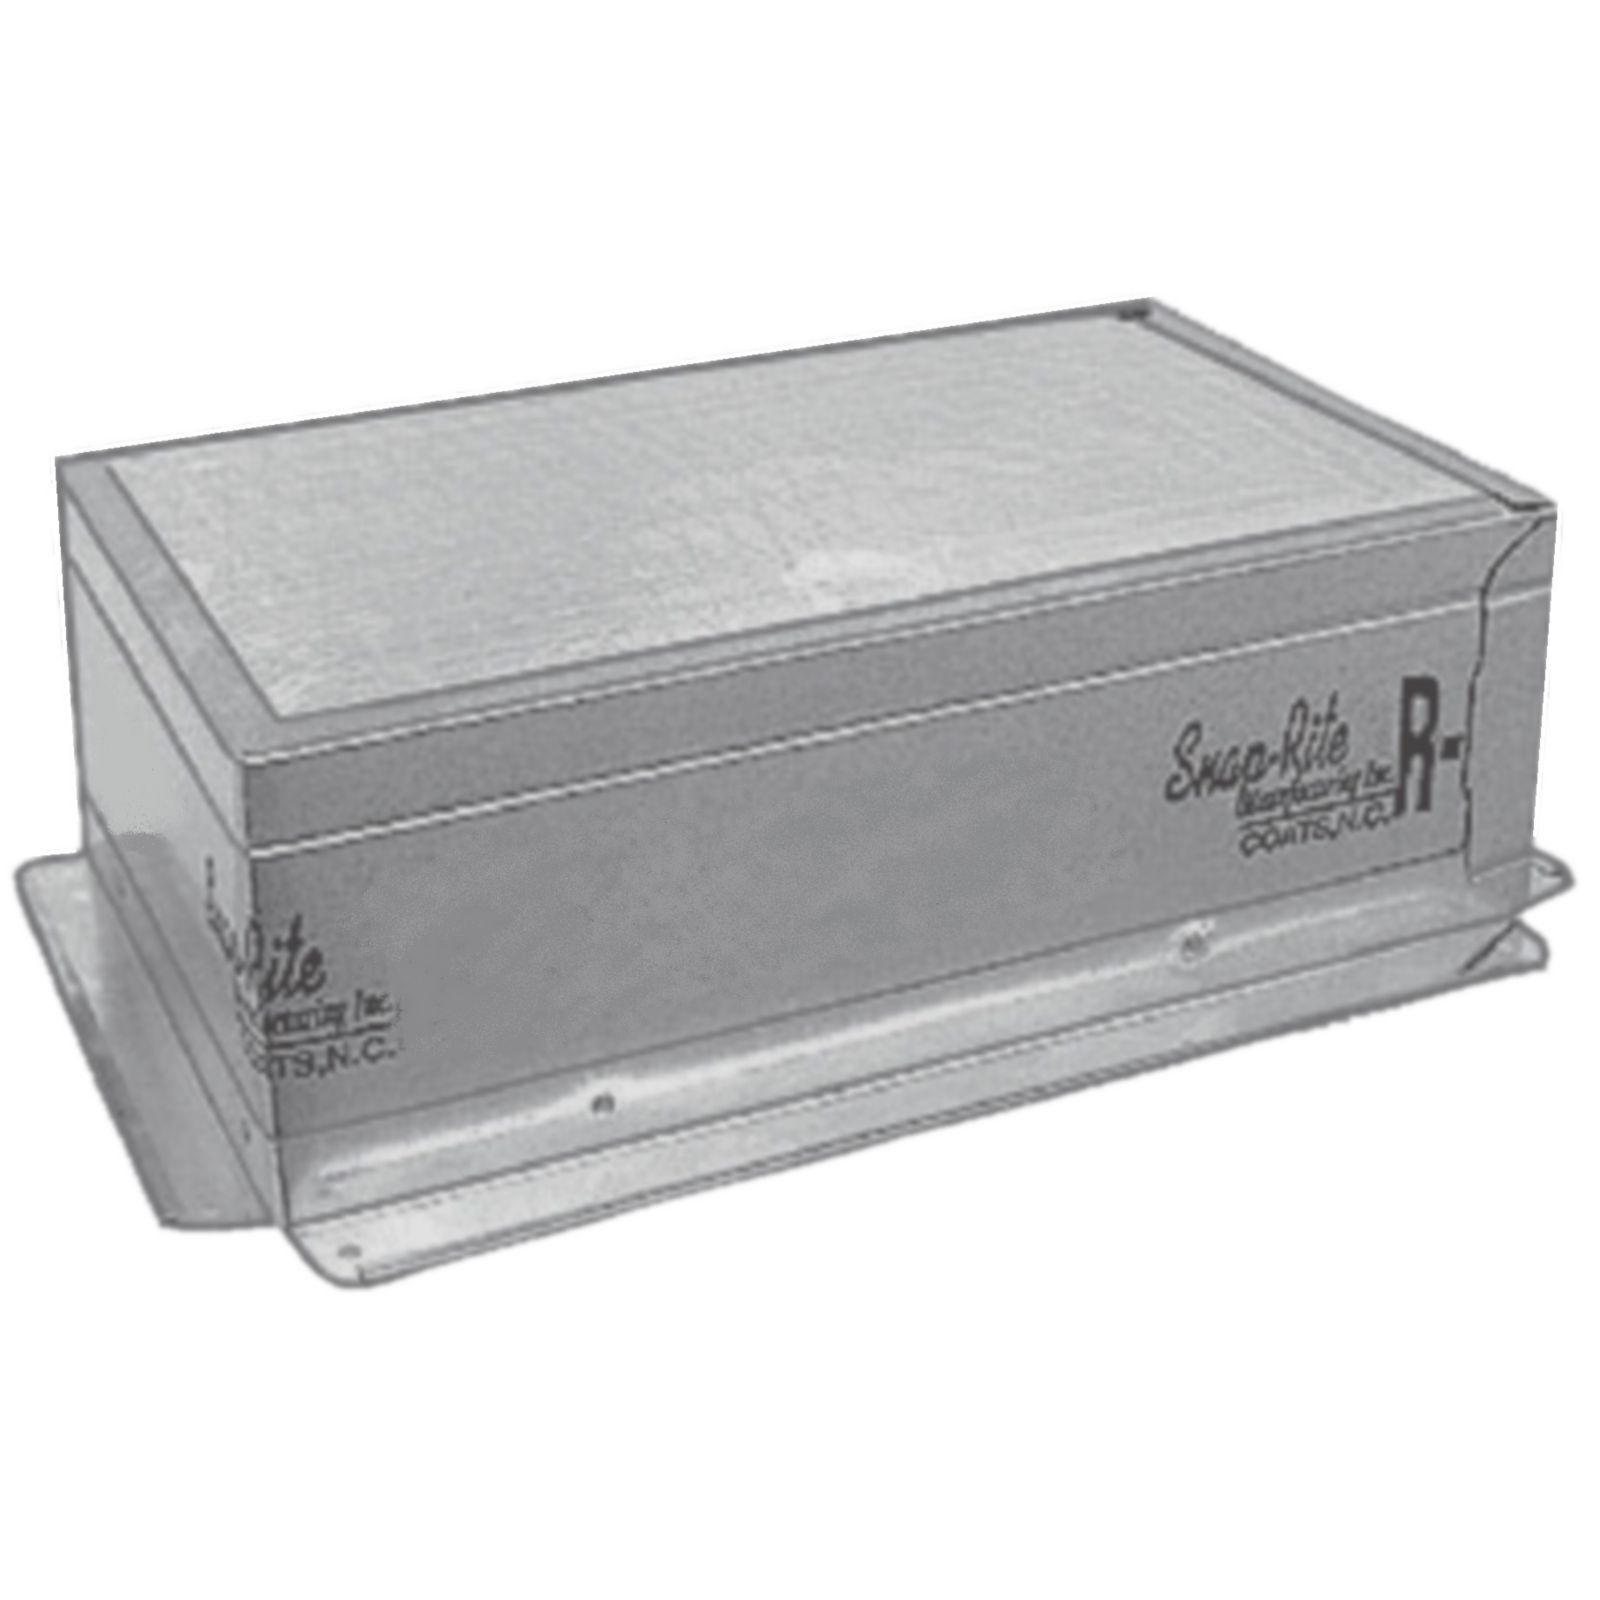 "Snap-Rite 24.5X24.5-3800F - Foil Top Insulated Register Box With Flange, 24.5"" x 24.5"" - R6"